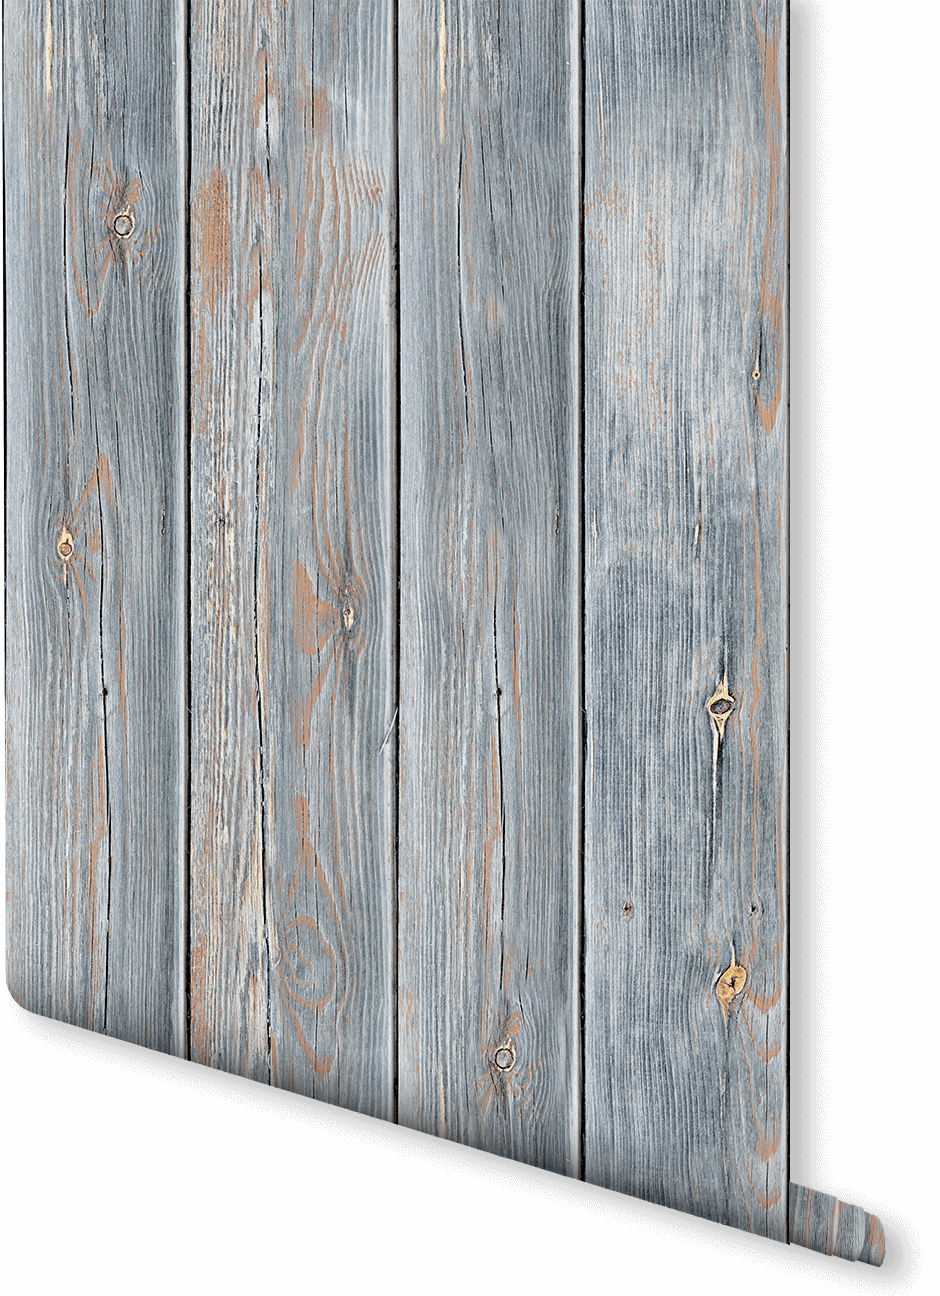 Go Industrial With This Wood Effect Wallpaper Design The Rawness Of Panels Reveal